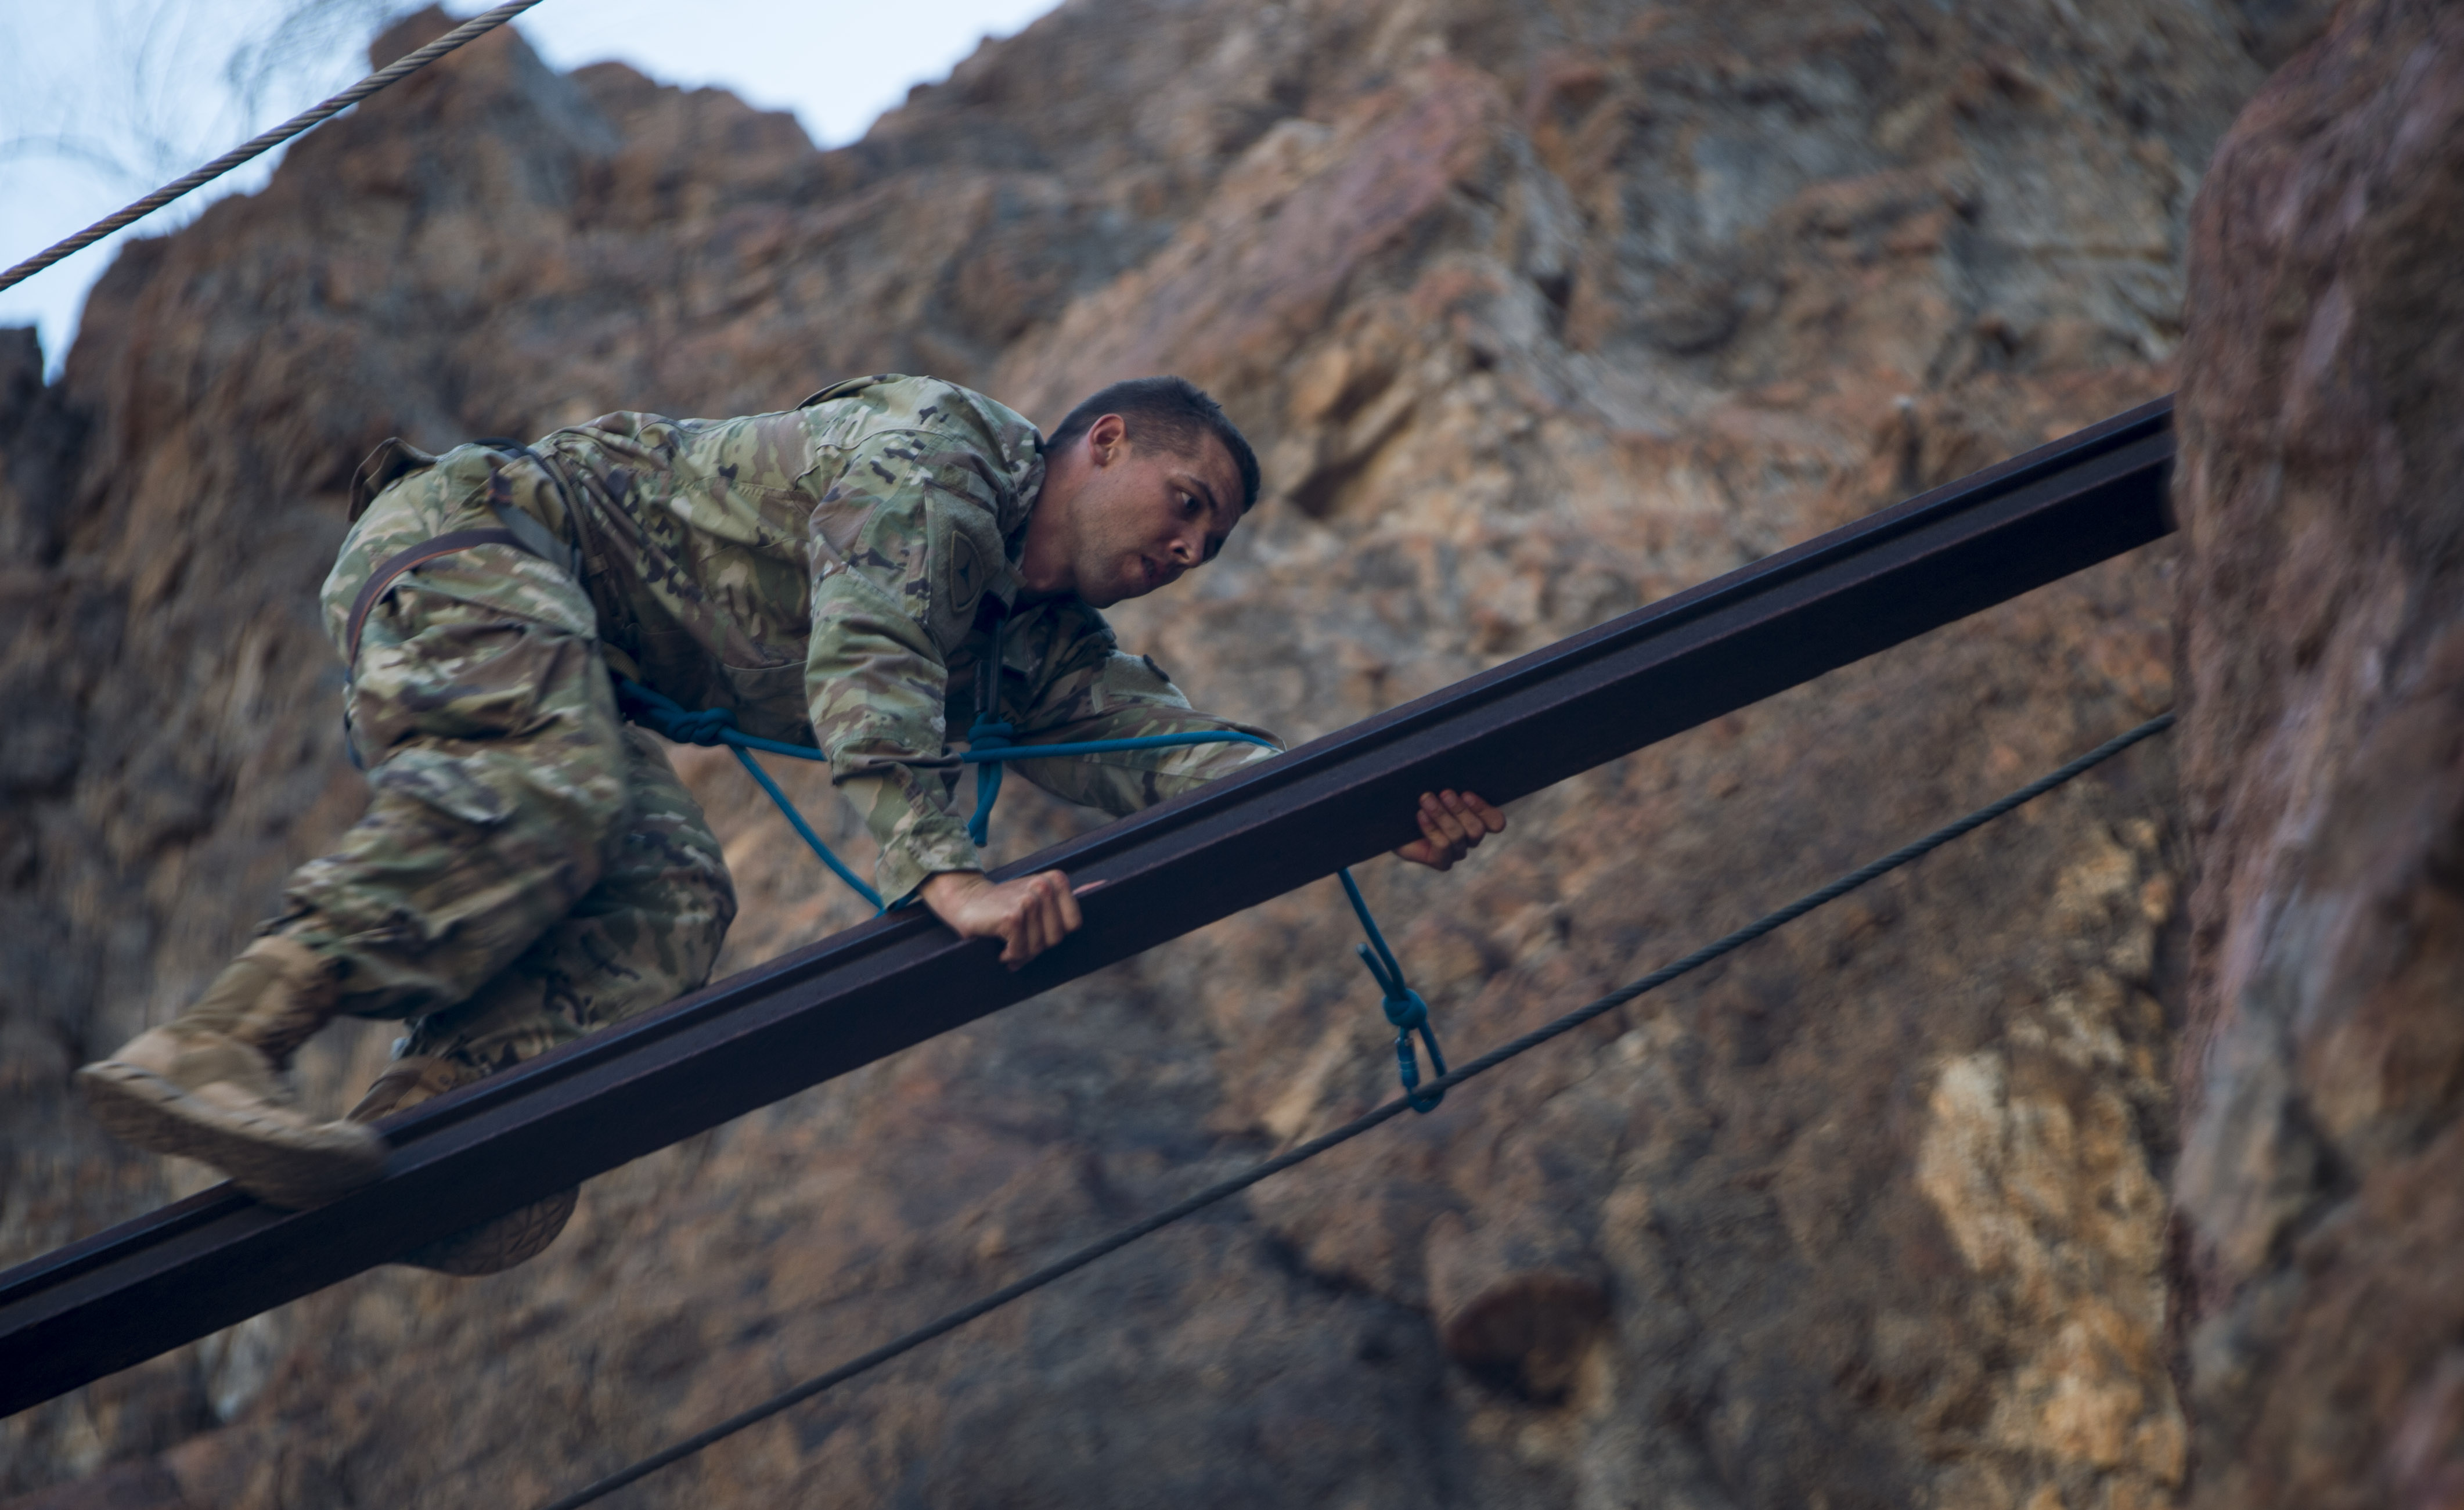 A U.S. Army Soldier assigned to the 3rd Battalion, 144th Infantry Regiment Task Force Bayonet, attached to the Combined Joint Task Force - Horn of Africa, climbs across a beam during the mountain obstacle portion of the French Desert Commando Course held at Arta, Djibouti, Dec. 3, 2017.Thirty U.S. service members participated in the obstacle course alongside French marines assigned to the 5th Overseas Interarms Regiment, Djibouti. (U.S. Air Force photo by Staff Sgt. Timothy Moore)